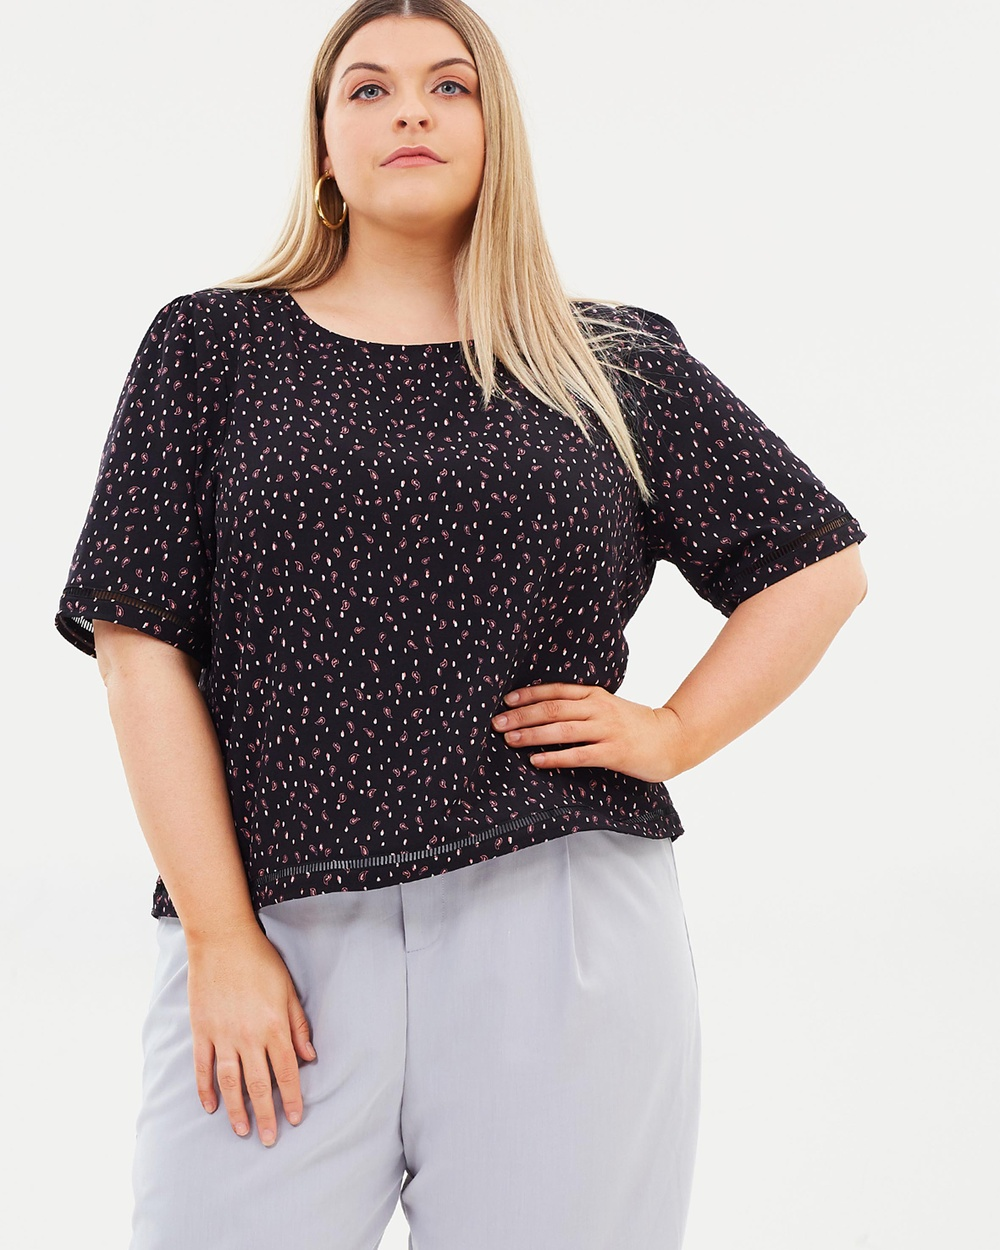 Atmos & Here Curvy ICONIC EXCLUSIVE Emily Woven Top Tops Paisley Scatter Print ICONIC EXCLUSIVE Emily Woven Top